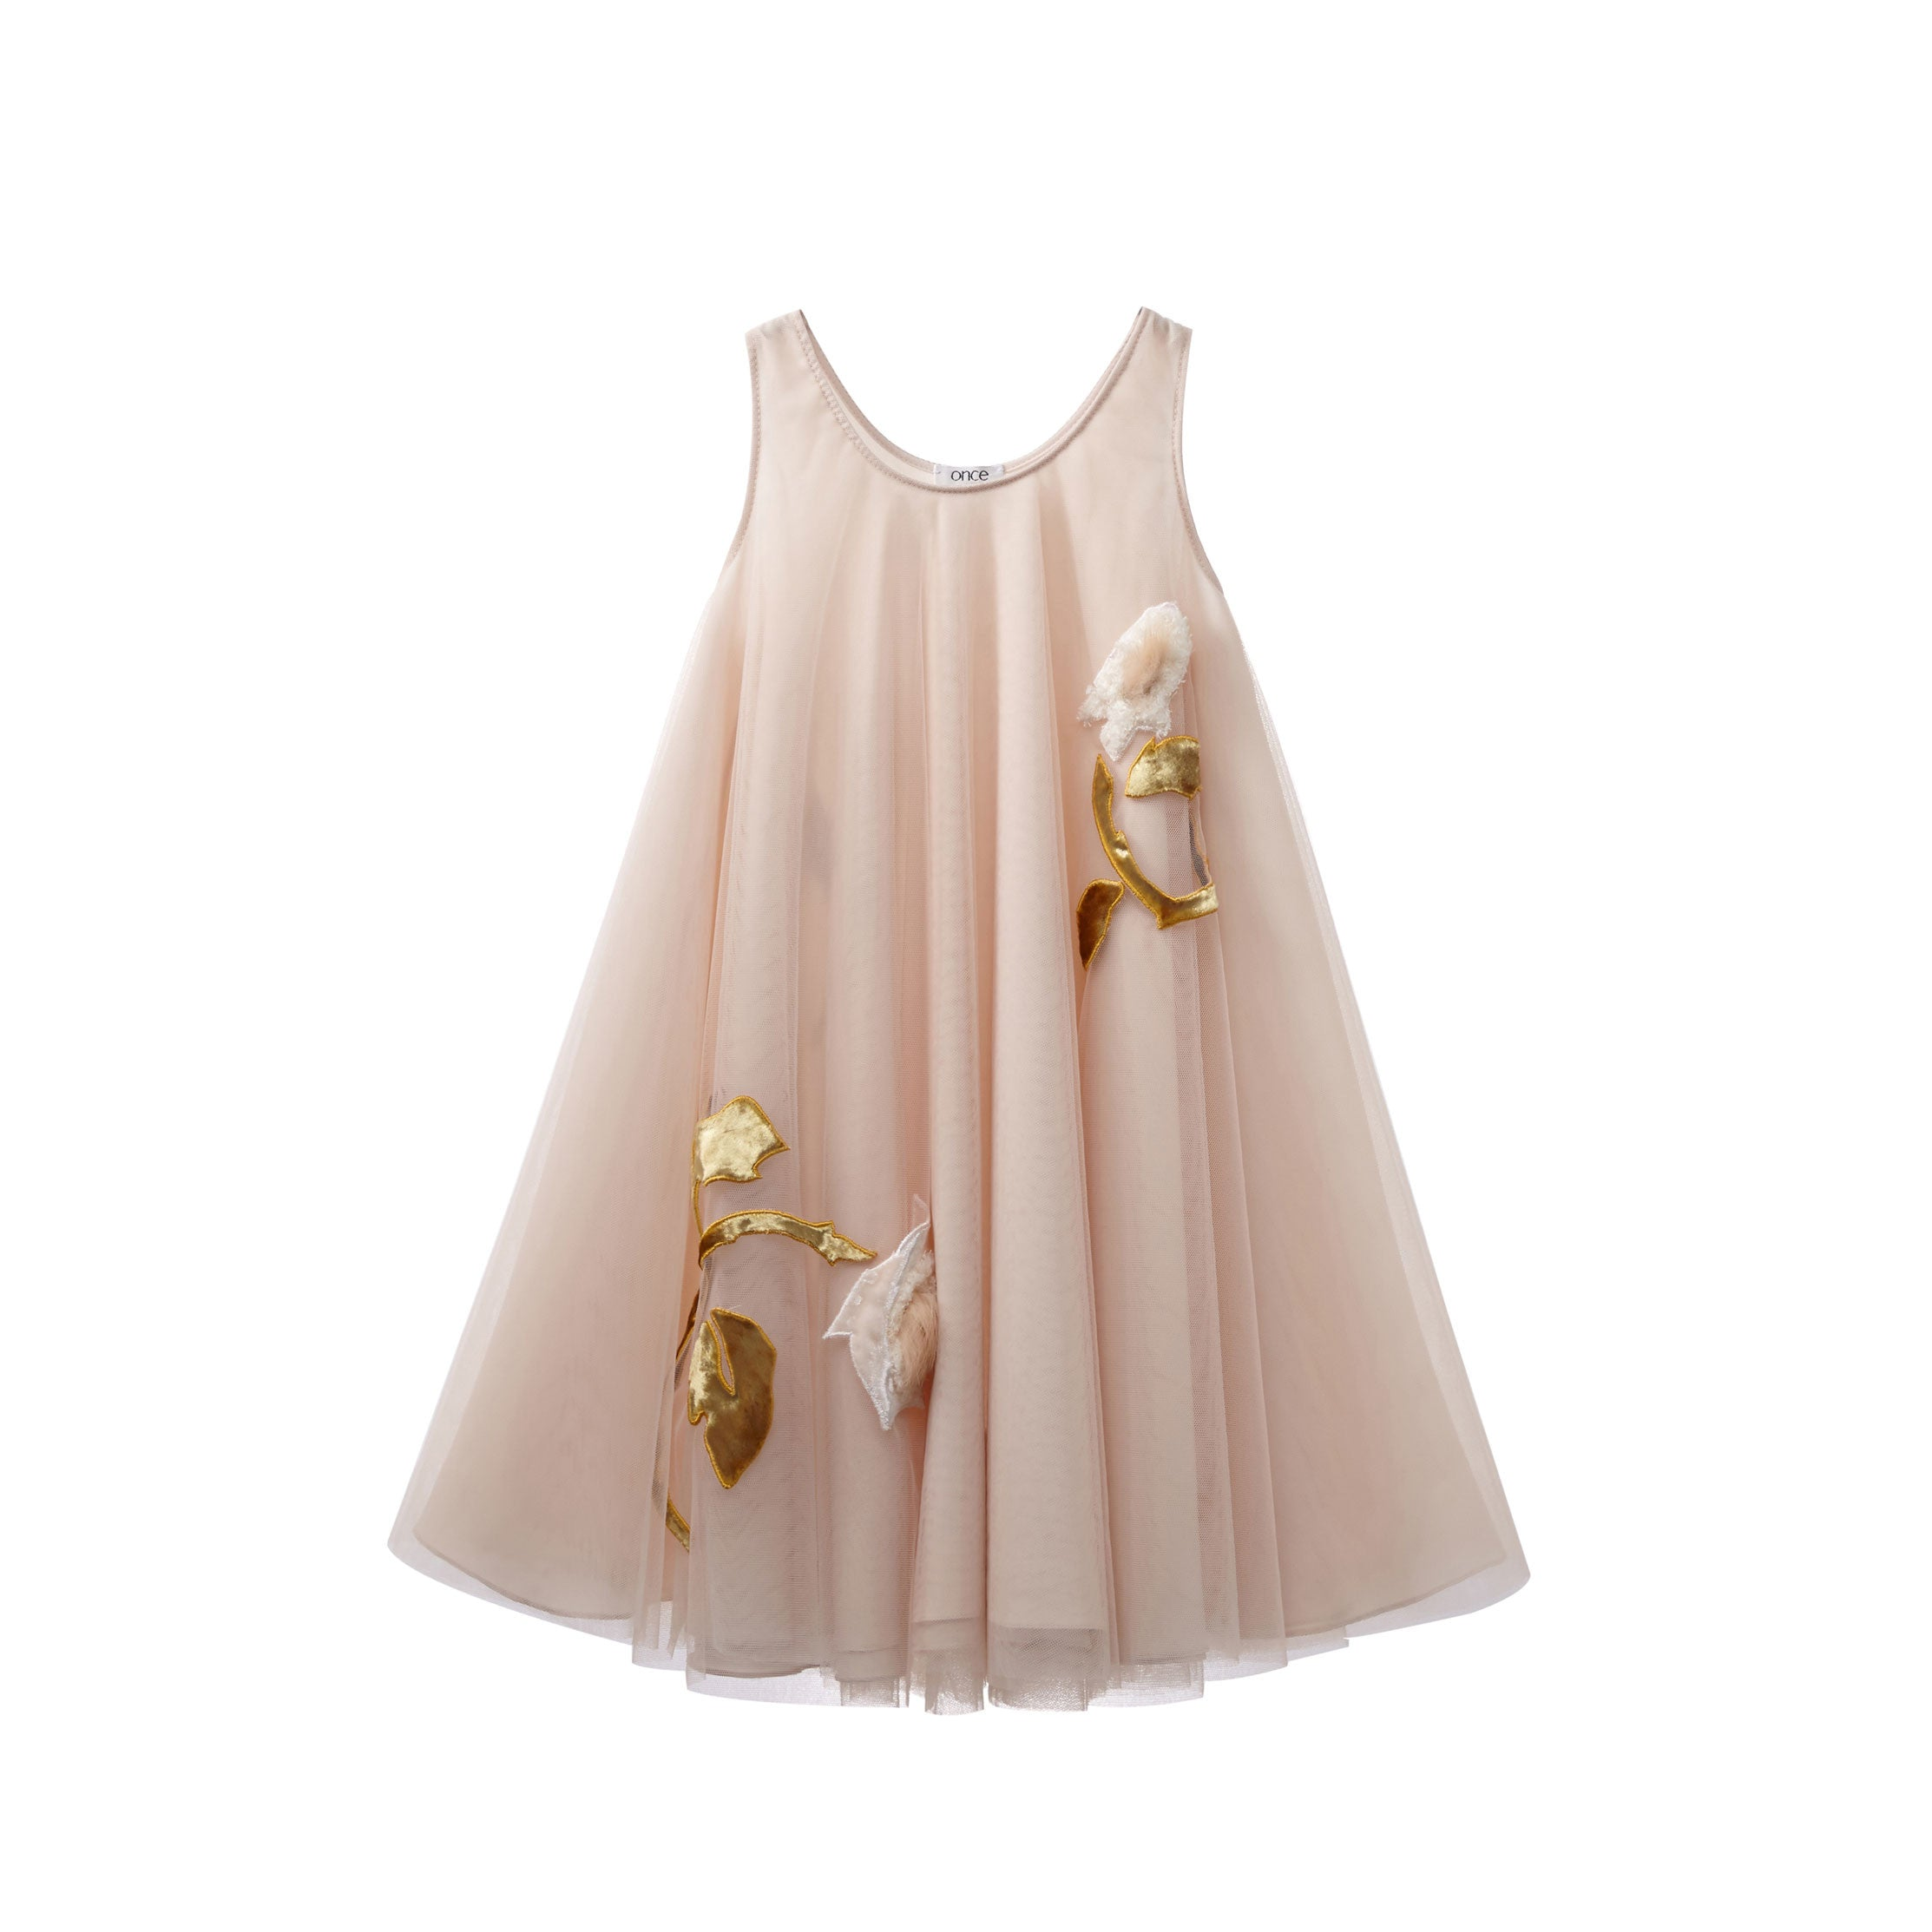 Once Peach Tulle Swing Dress